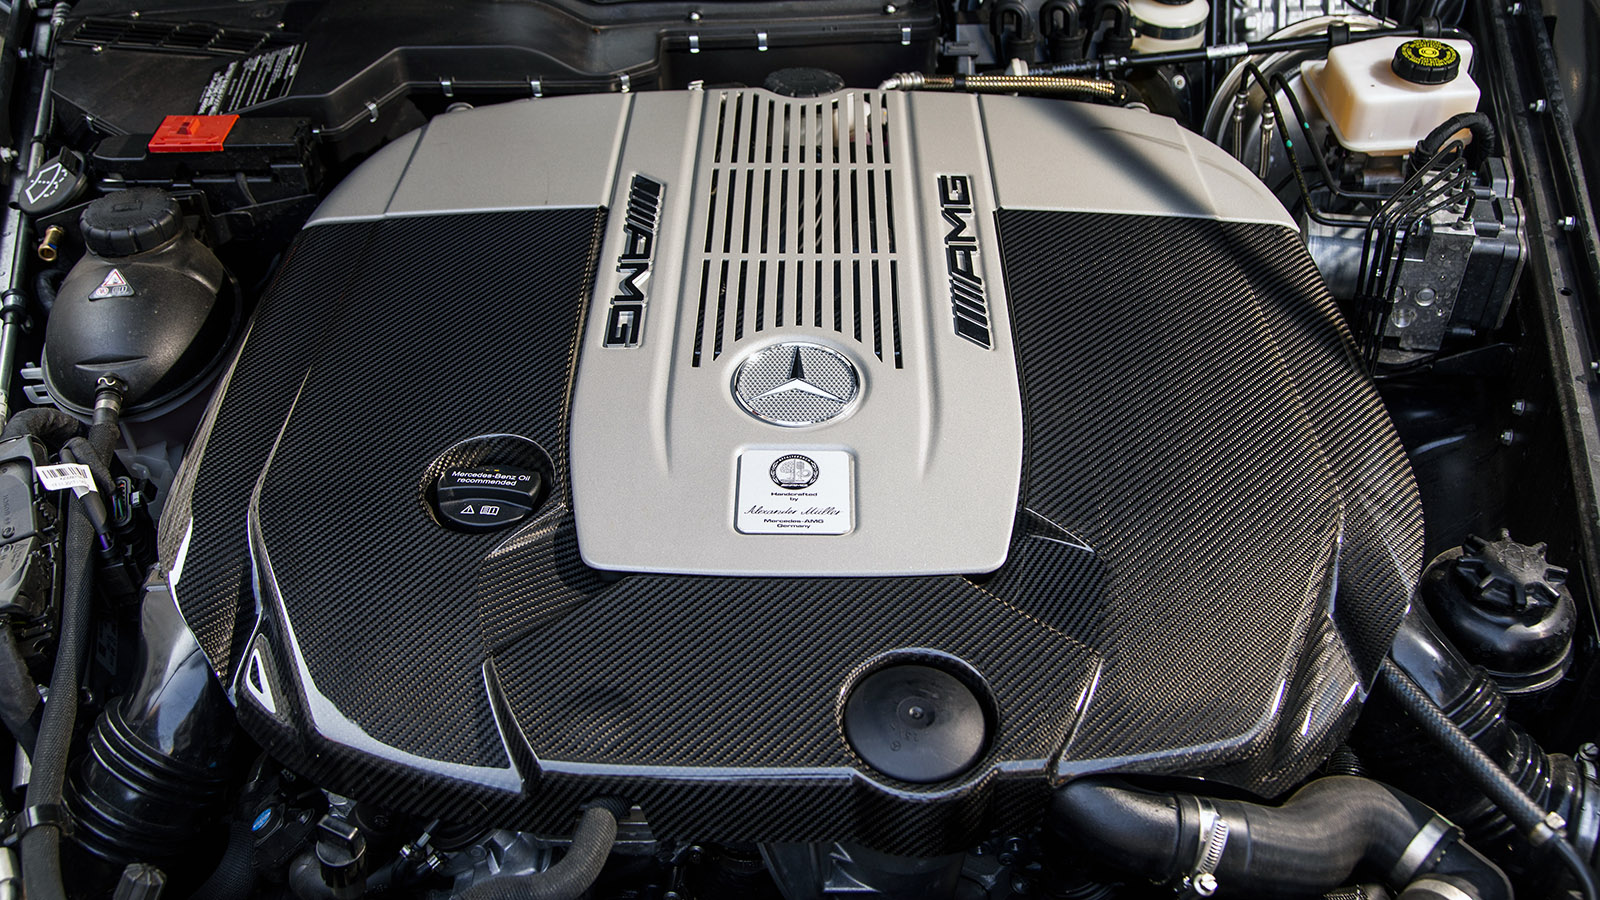 How Are 4-cylinder and V6 Engines Different? - 4-Cylinder